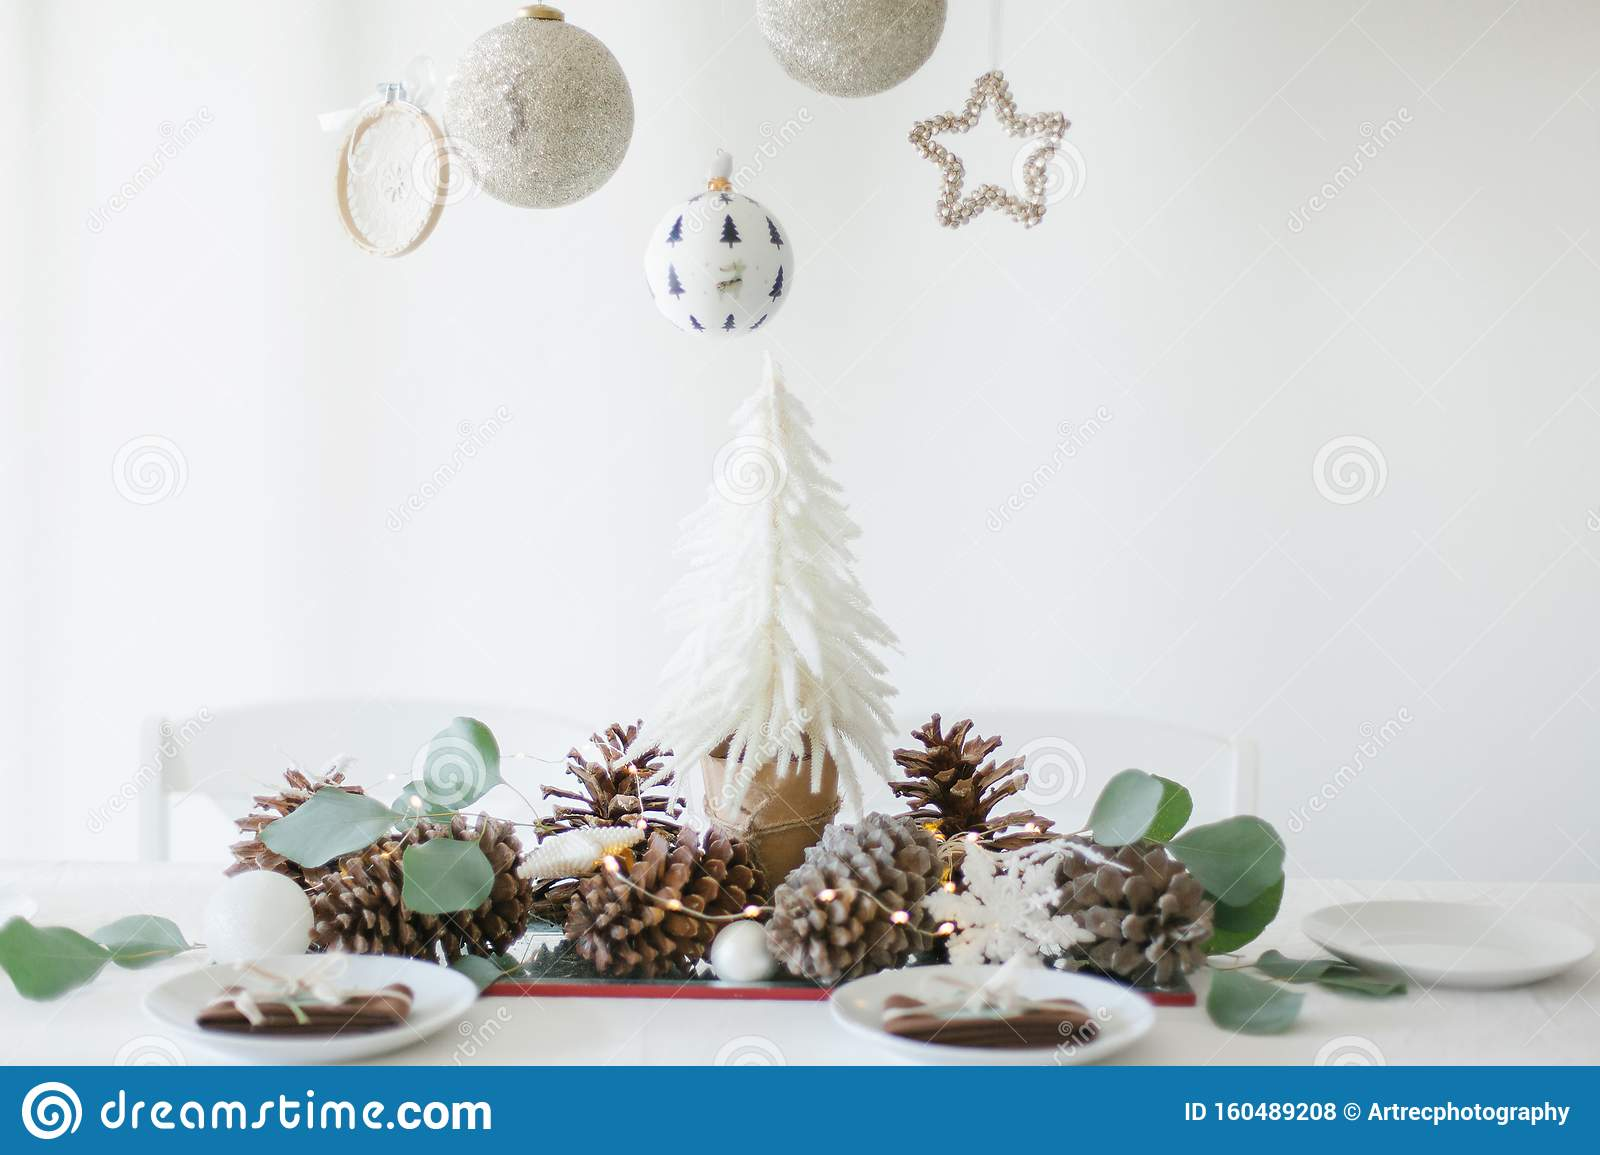 Winter Table Decoration With Mini Christmas Tree Pine Cones And Toys Stock Photo Image Of Napkins Dinner 160489208